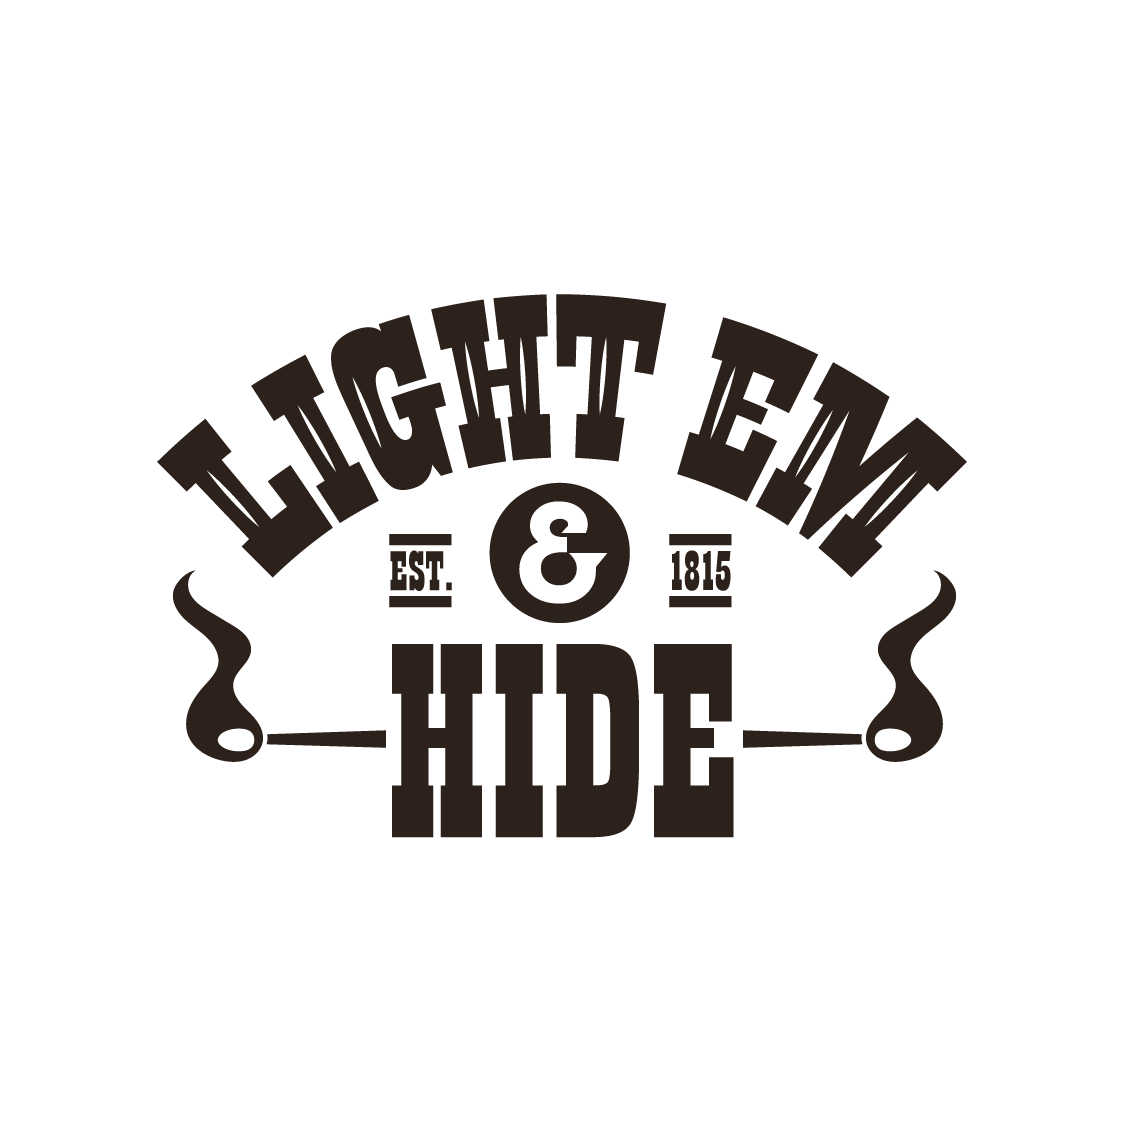 Litem and Hide Podcast